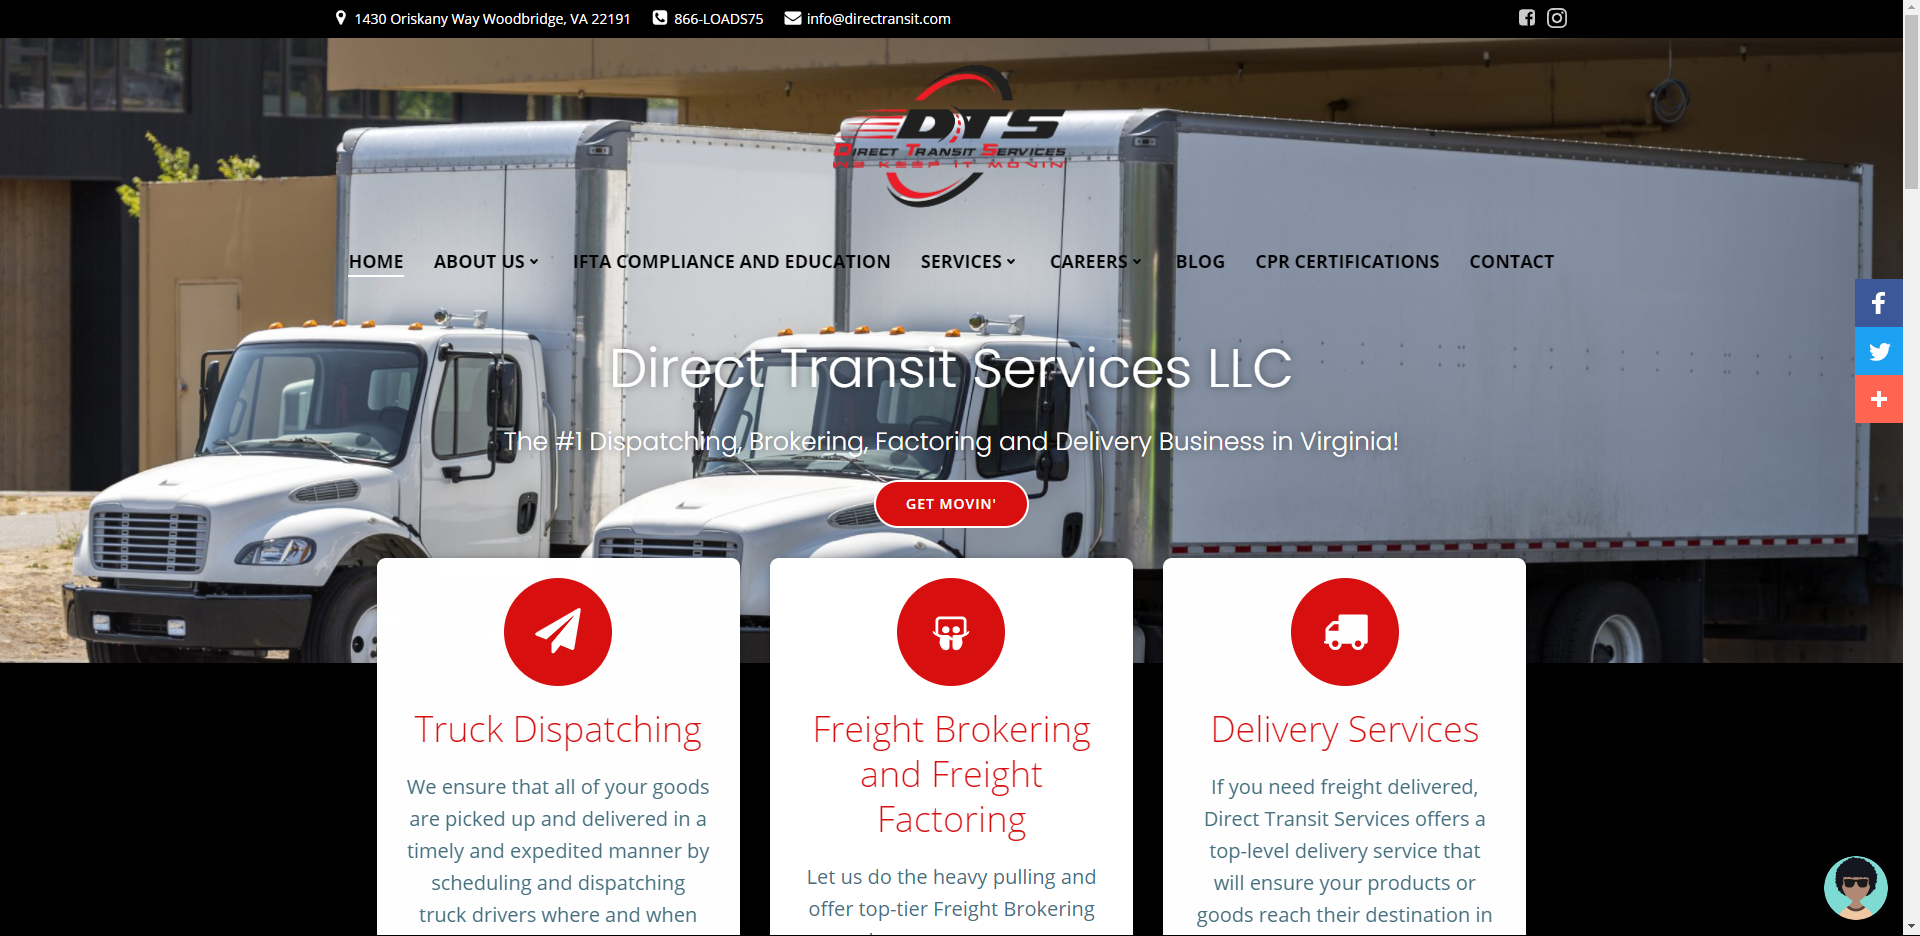 Direct Transit Services